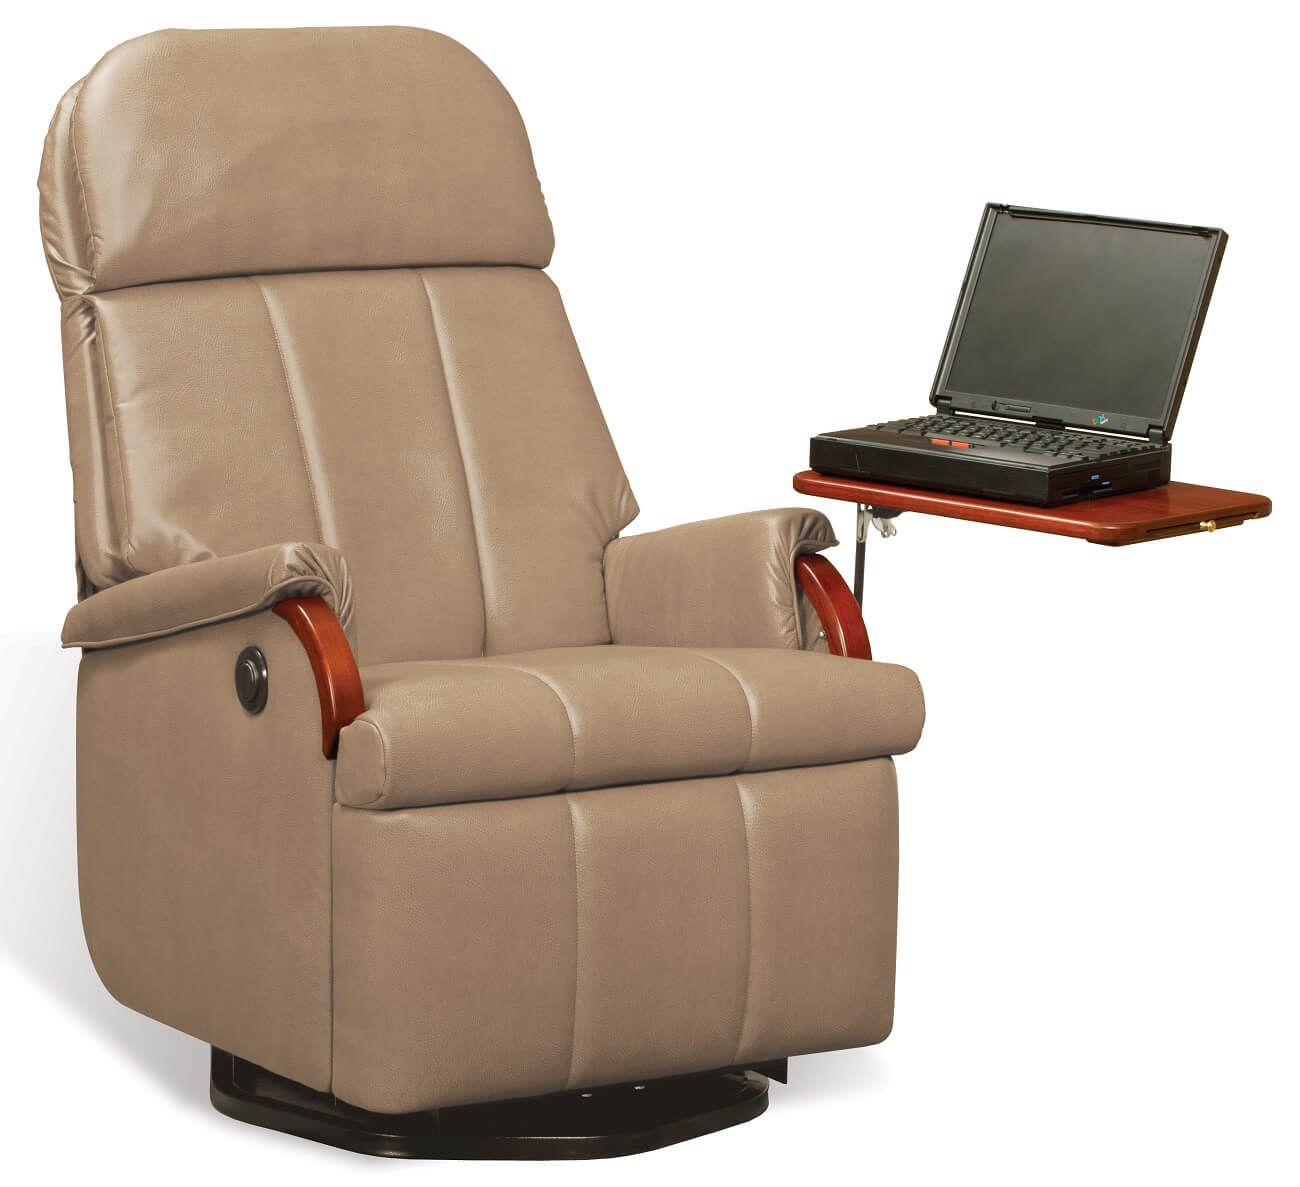 Pembridge Recliner with computer table